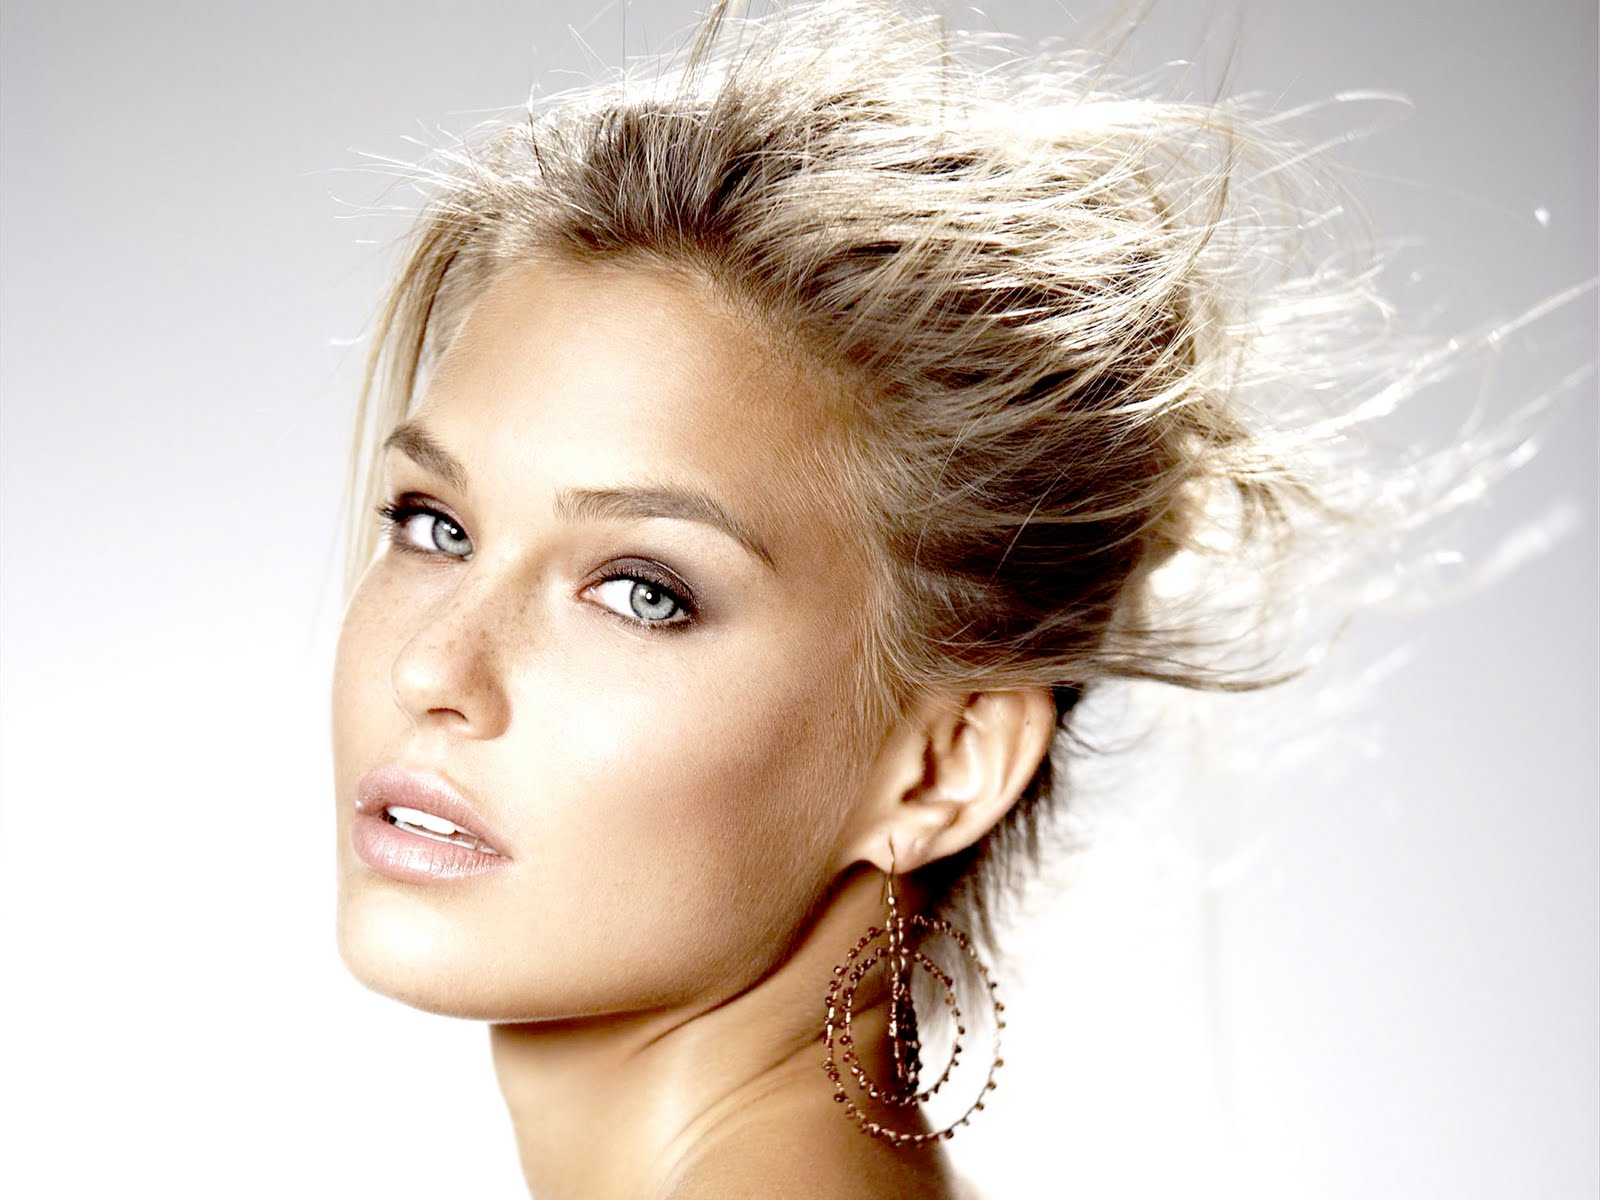 http://3.bp.blogspot.com/-19DZhu_dO_I/TjwFety4h-I/AAAAAAAAAZ4/0lyGLGC2htE/s1600/Bar_Refaeli_High_Resolution_Aag_Wallpapers_99010.jpg